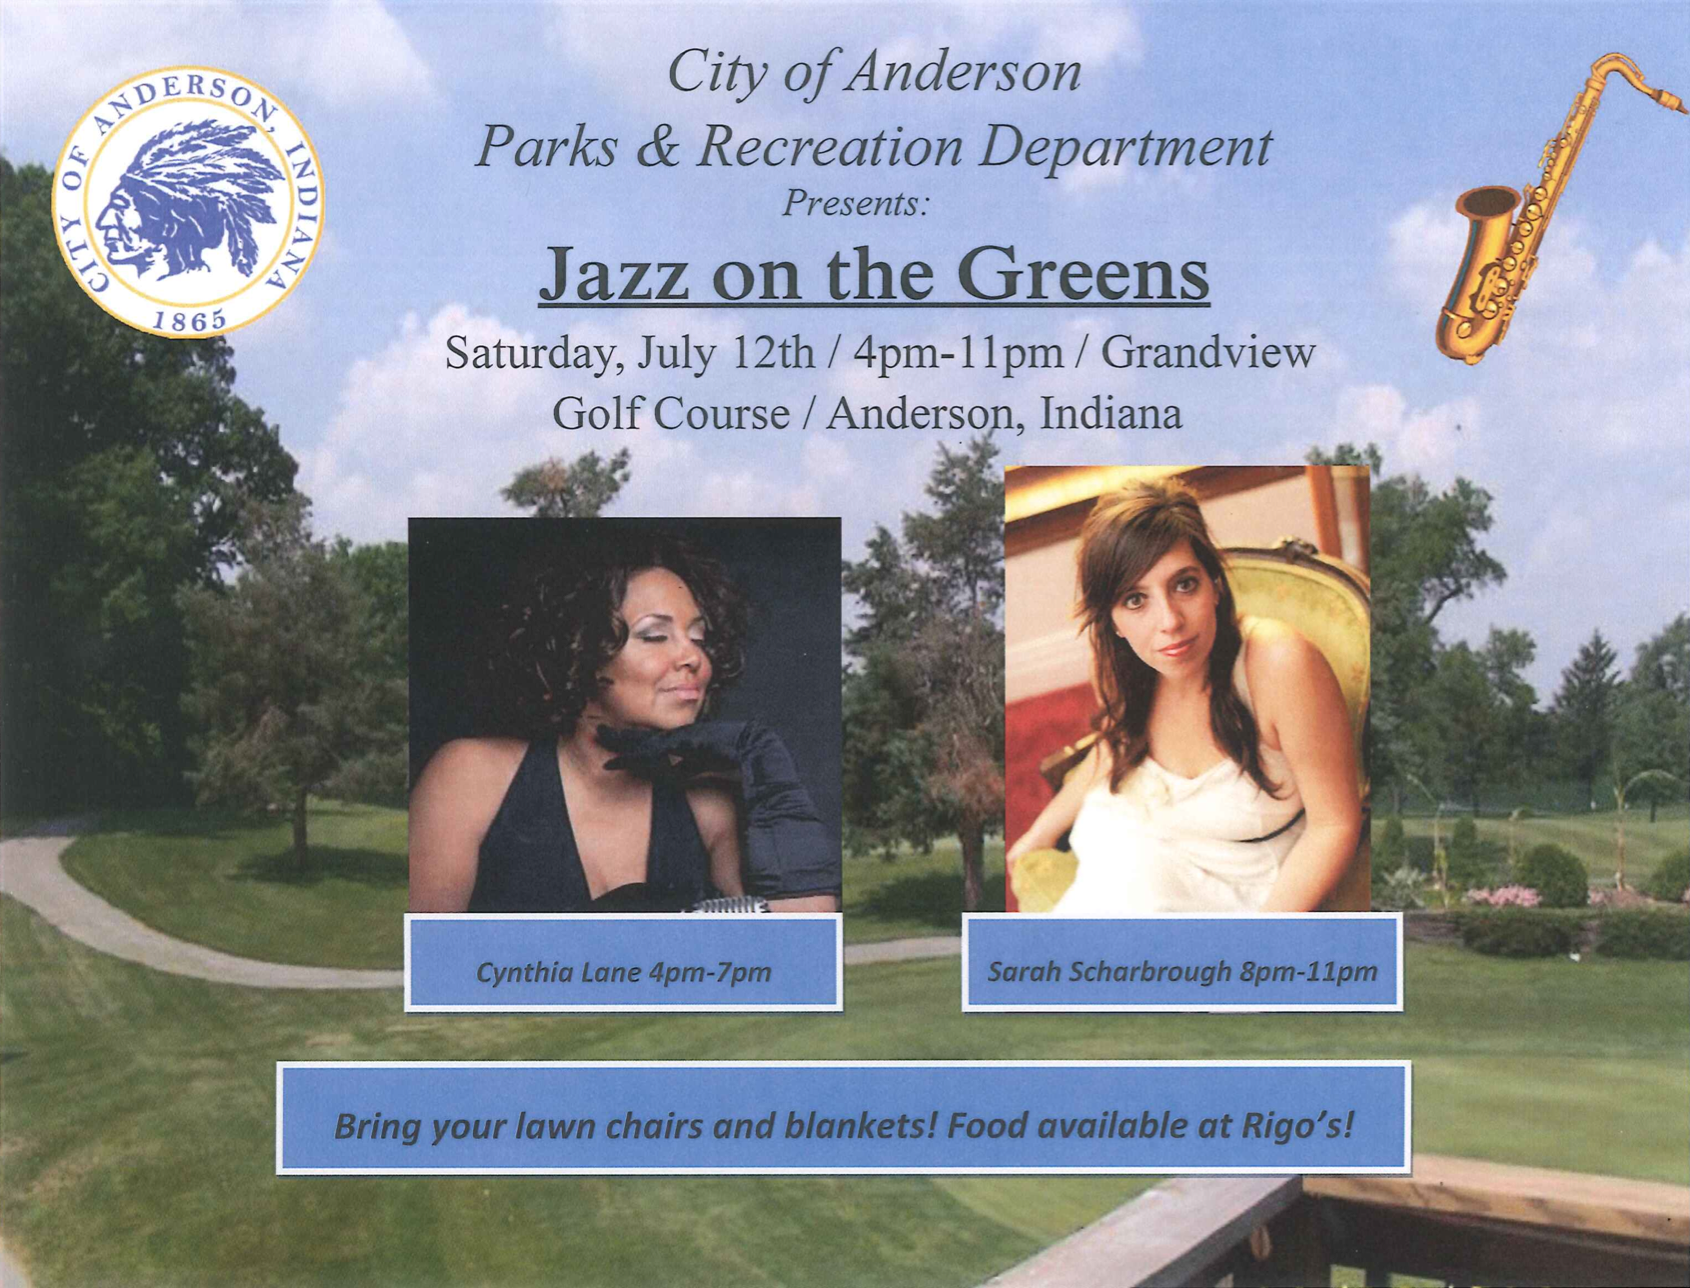 Jazz on the Greens 2014 Flier.png